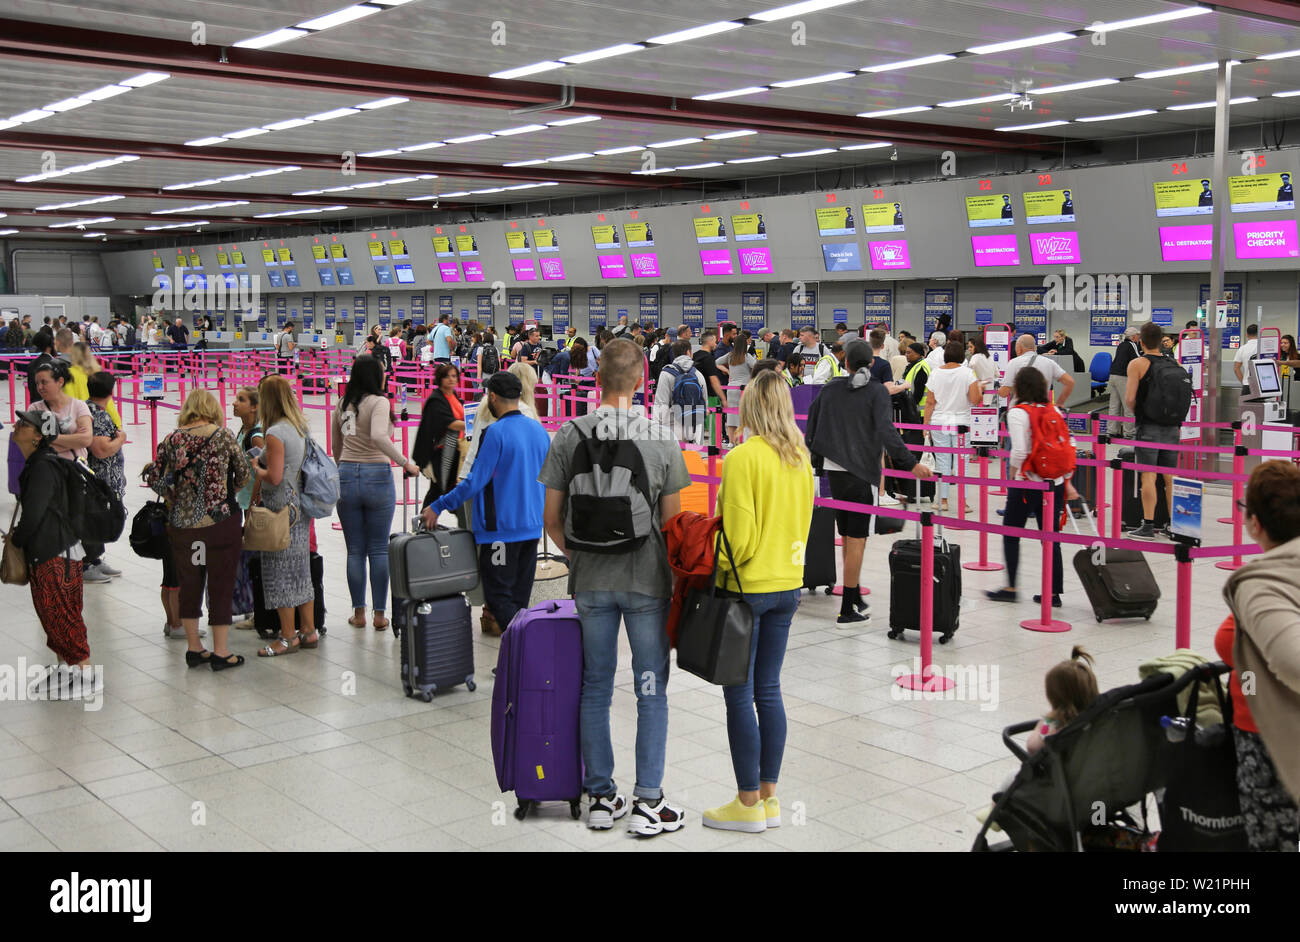 London Luton Airport Uk Check In Hall Wizz Air Passengers Queue To Check In For Flights Luton S Check In Hall Has 62 Desks In A Single Line Stock Photo Alamy